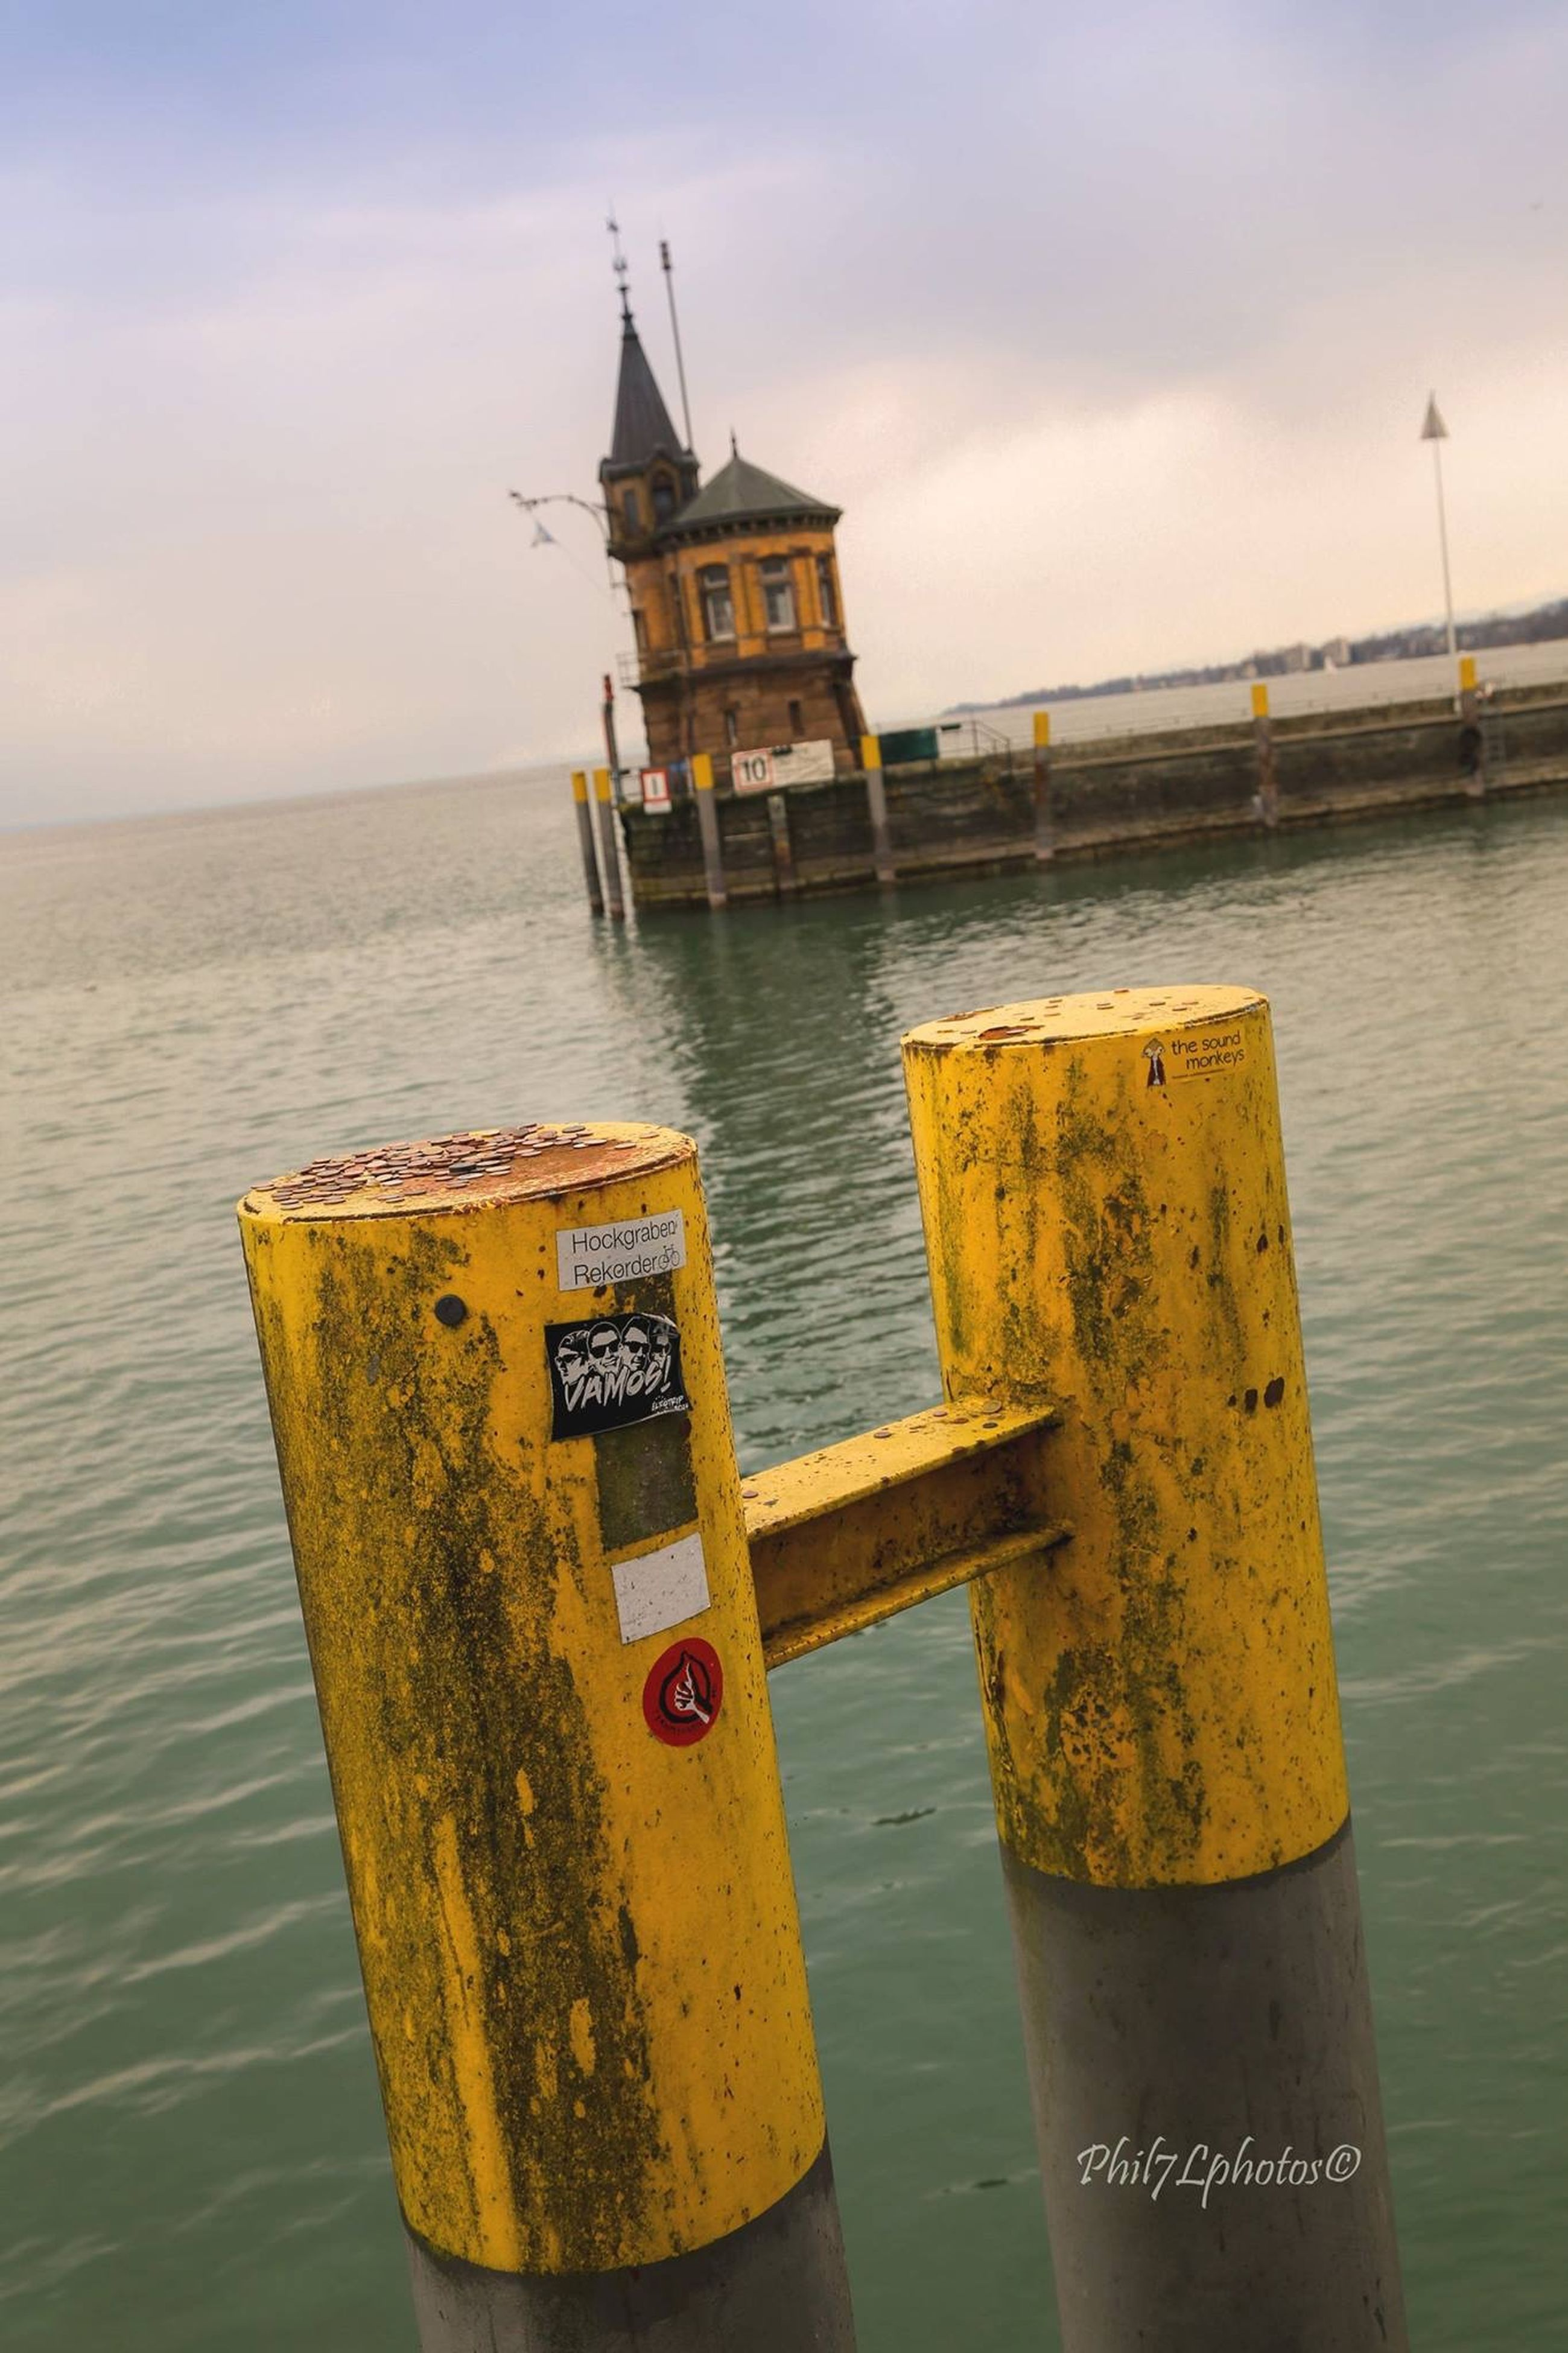 water, sea, sky, yellow, horizon over water, cloud - sky, tranquility, tranquil scene, scenics, nature, guidance, wooden post, pier, text, waterfront, beauty in nature, built structure, outdoors, no people, nautical vessel